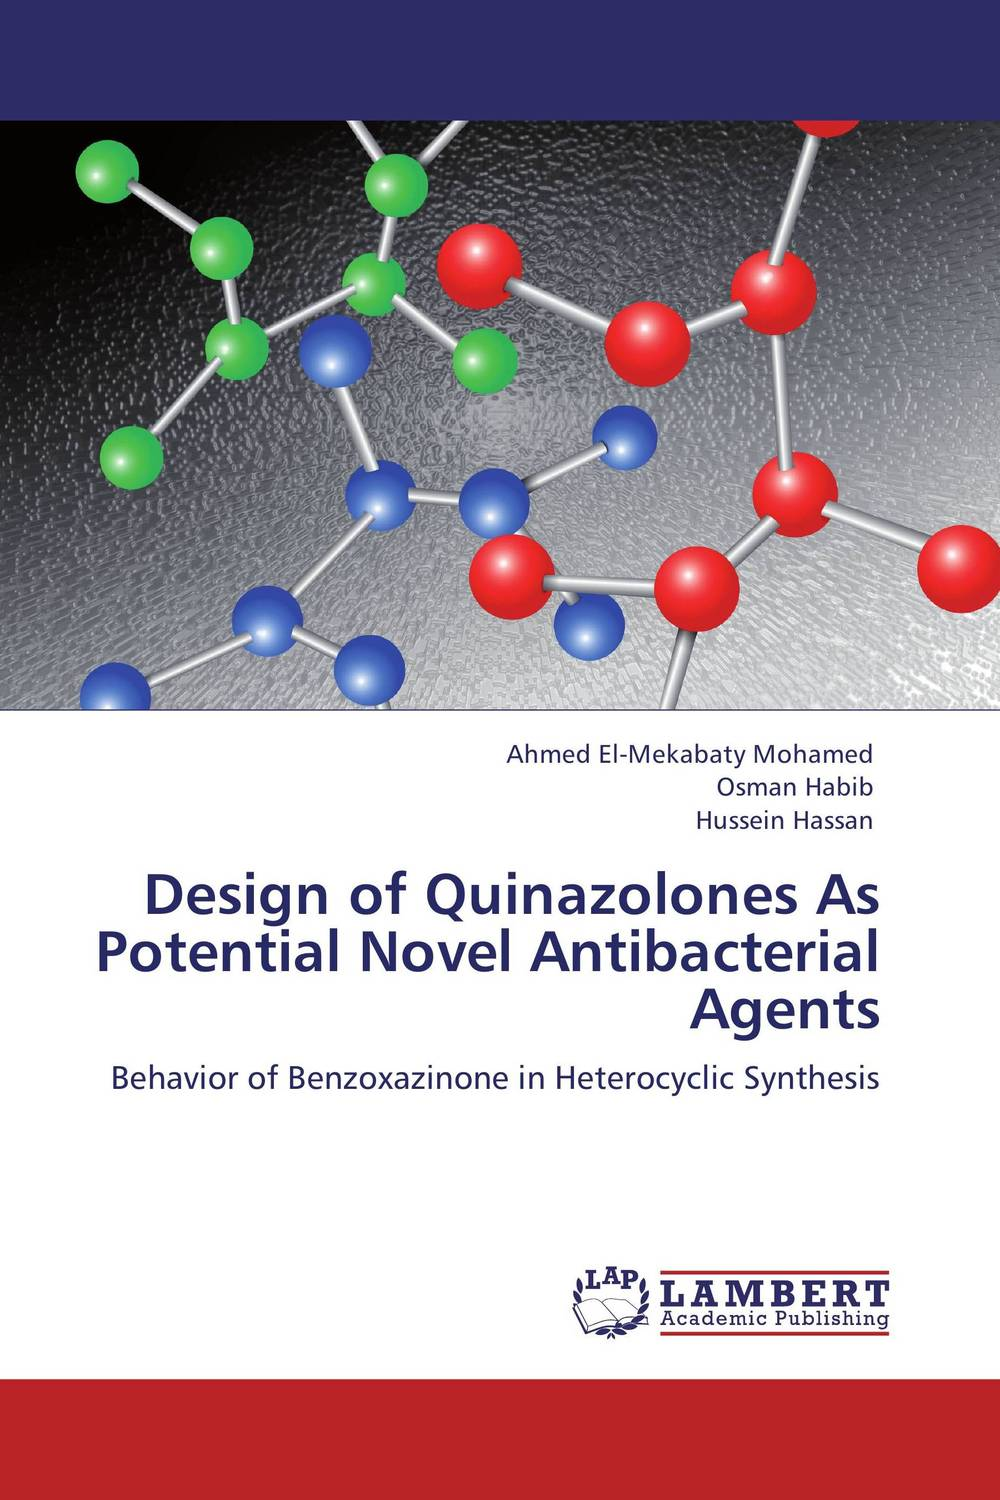 Design of Quinazolones As Potential Novel Antibacterial Agents novel arylpiperazines as anxiolytic agents synthesis and sar